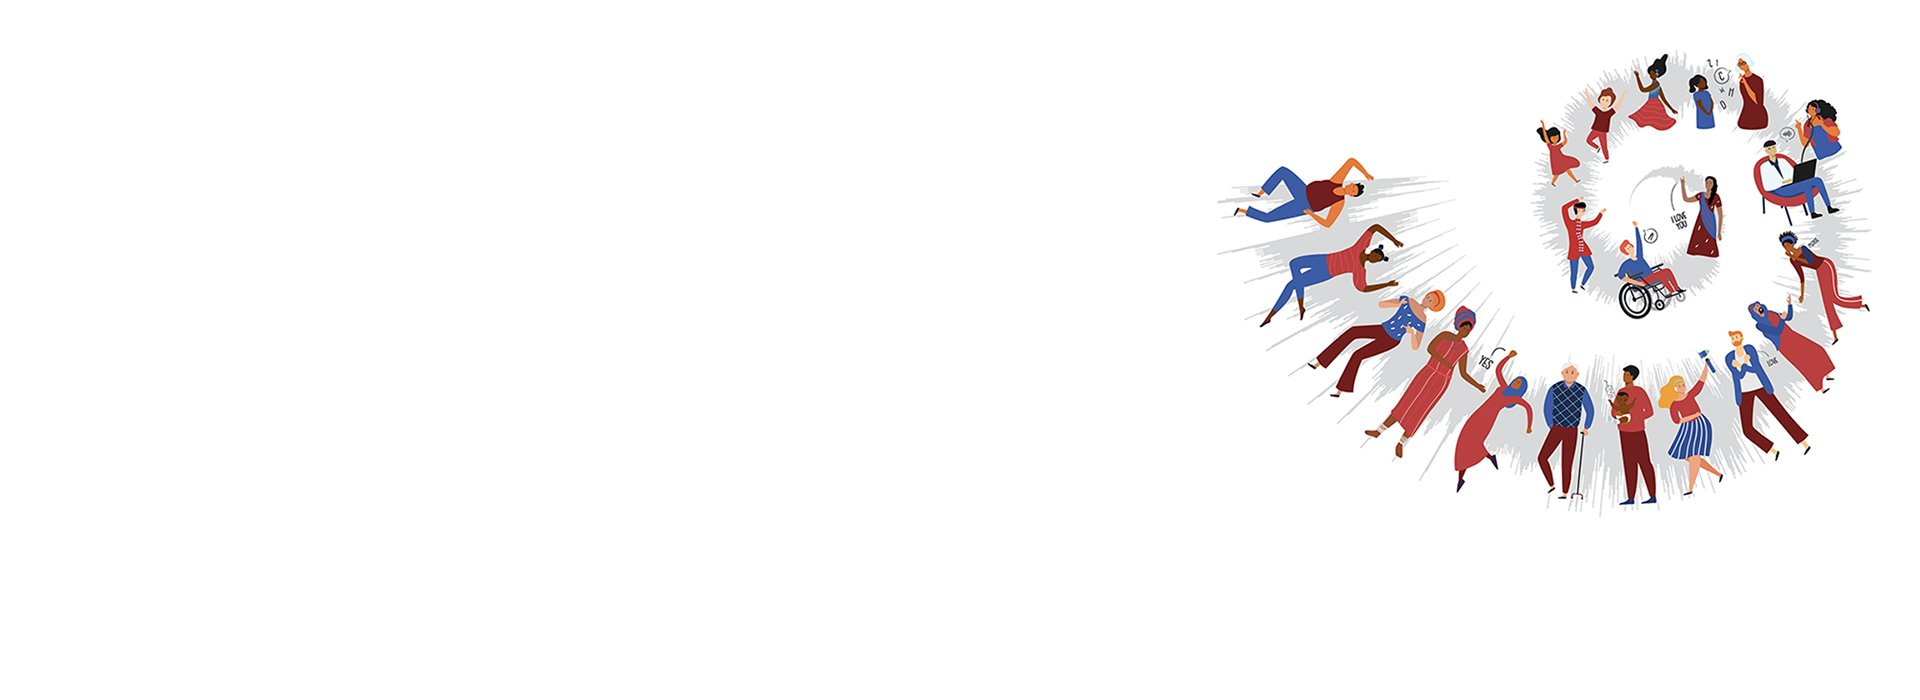 introbanner_whd2